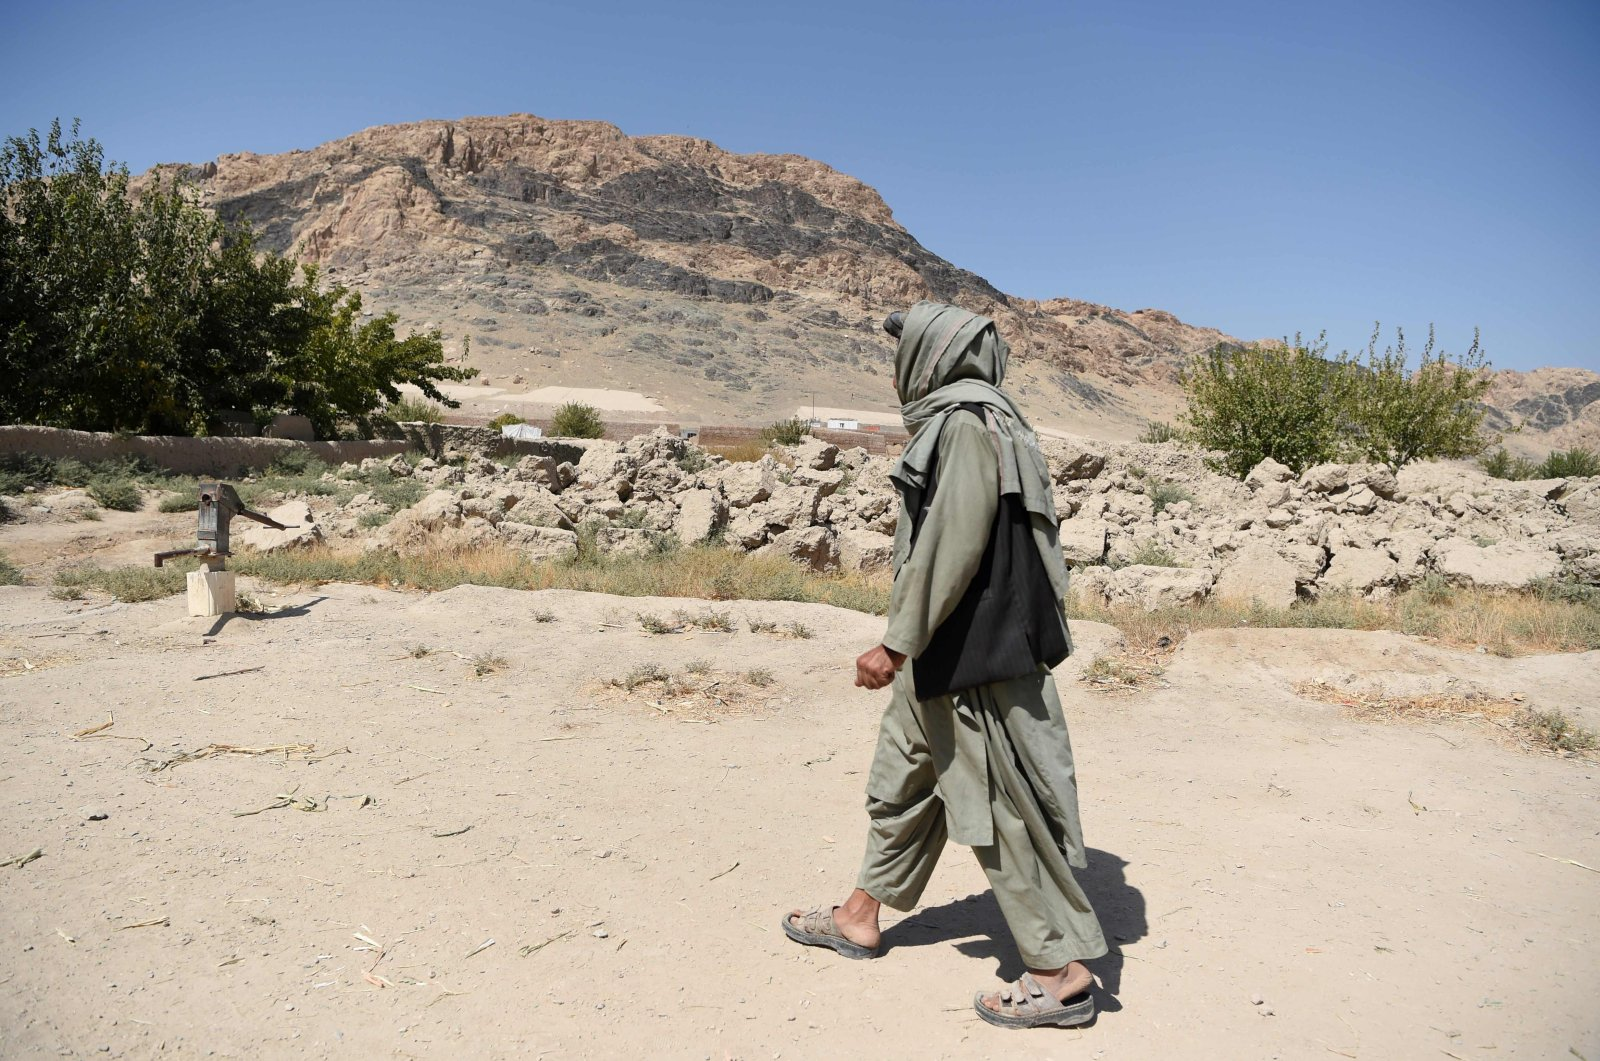 Former commander and senior district official for the Taliban, Haji Lala, arrives for an interview with Agence France-Presse (AFP) in Panjwai, Afghanistan, Sept. 28, 2020. (AFP Photo)